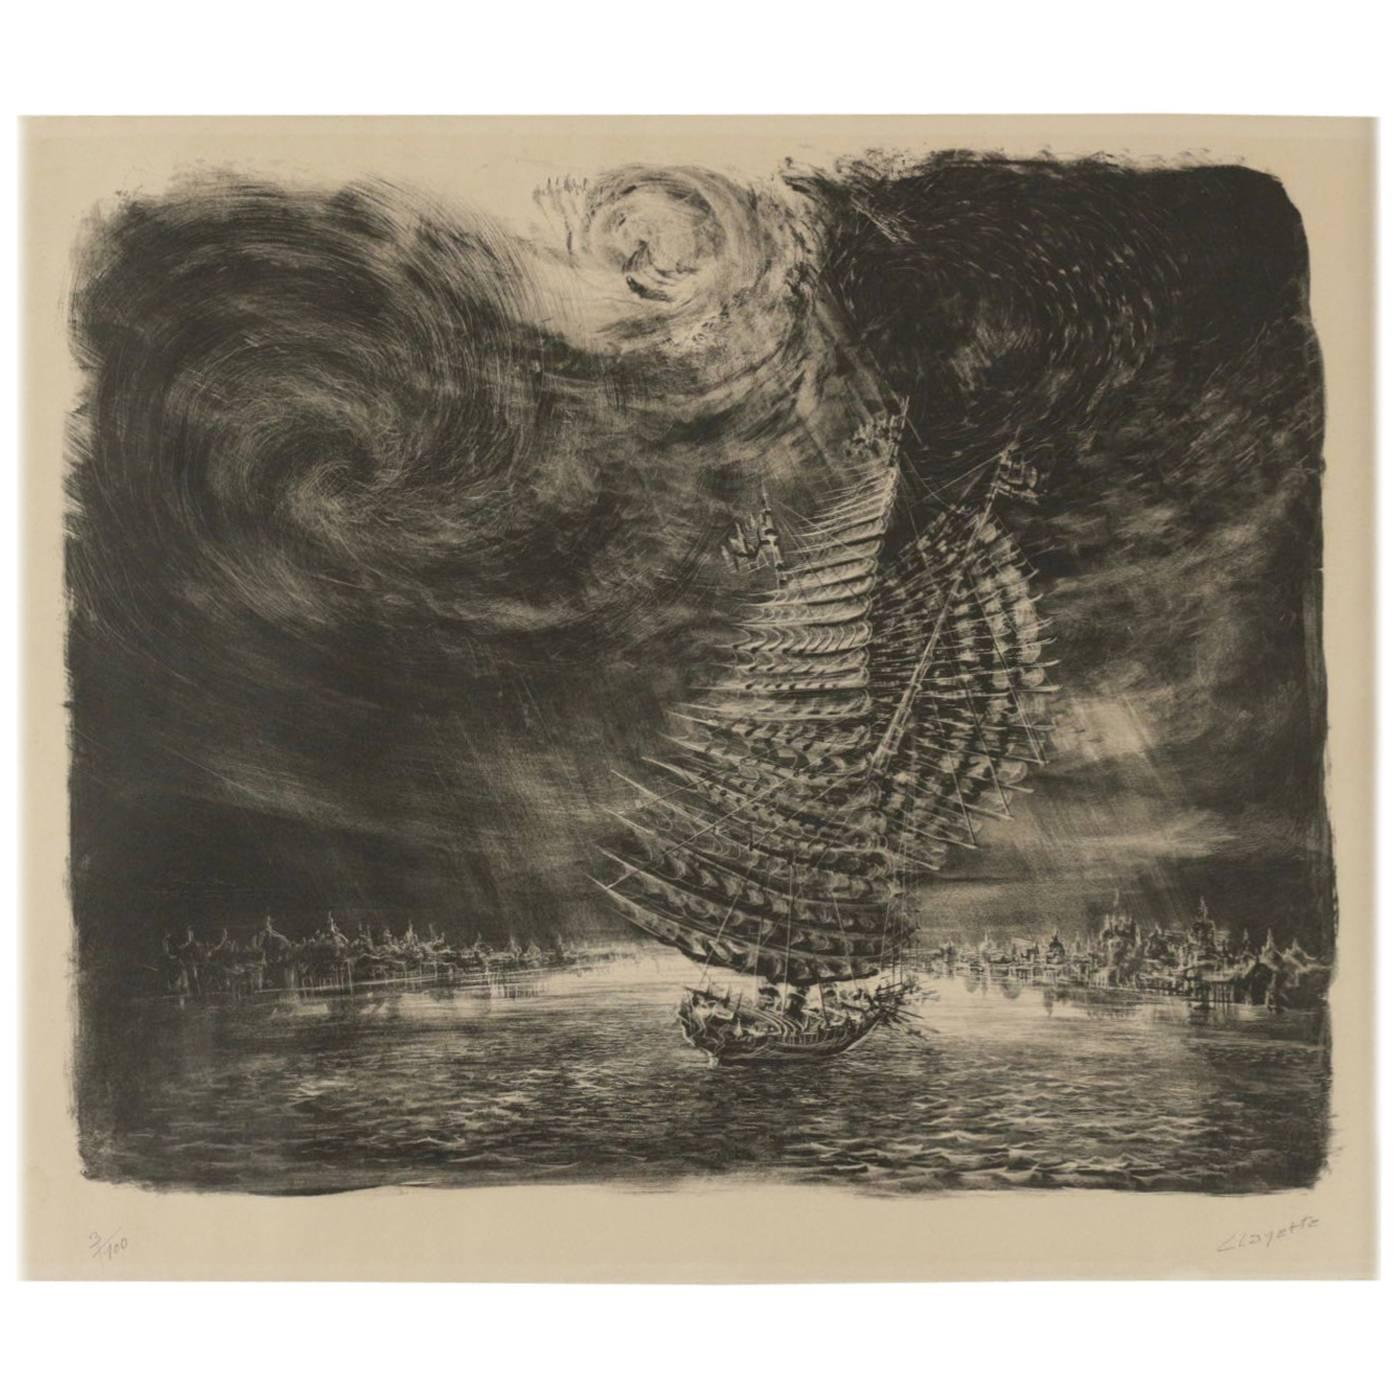 Original Lithograph by Clayette